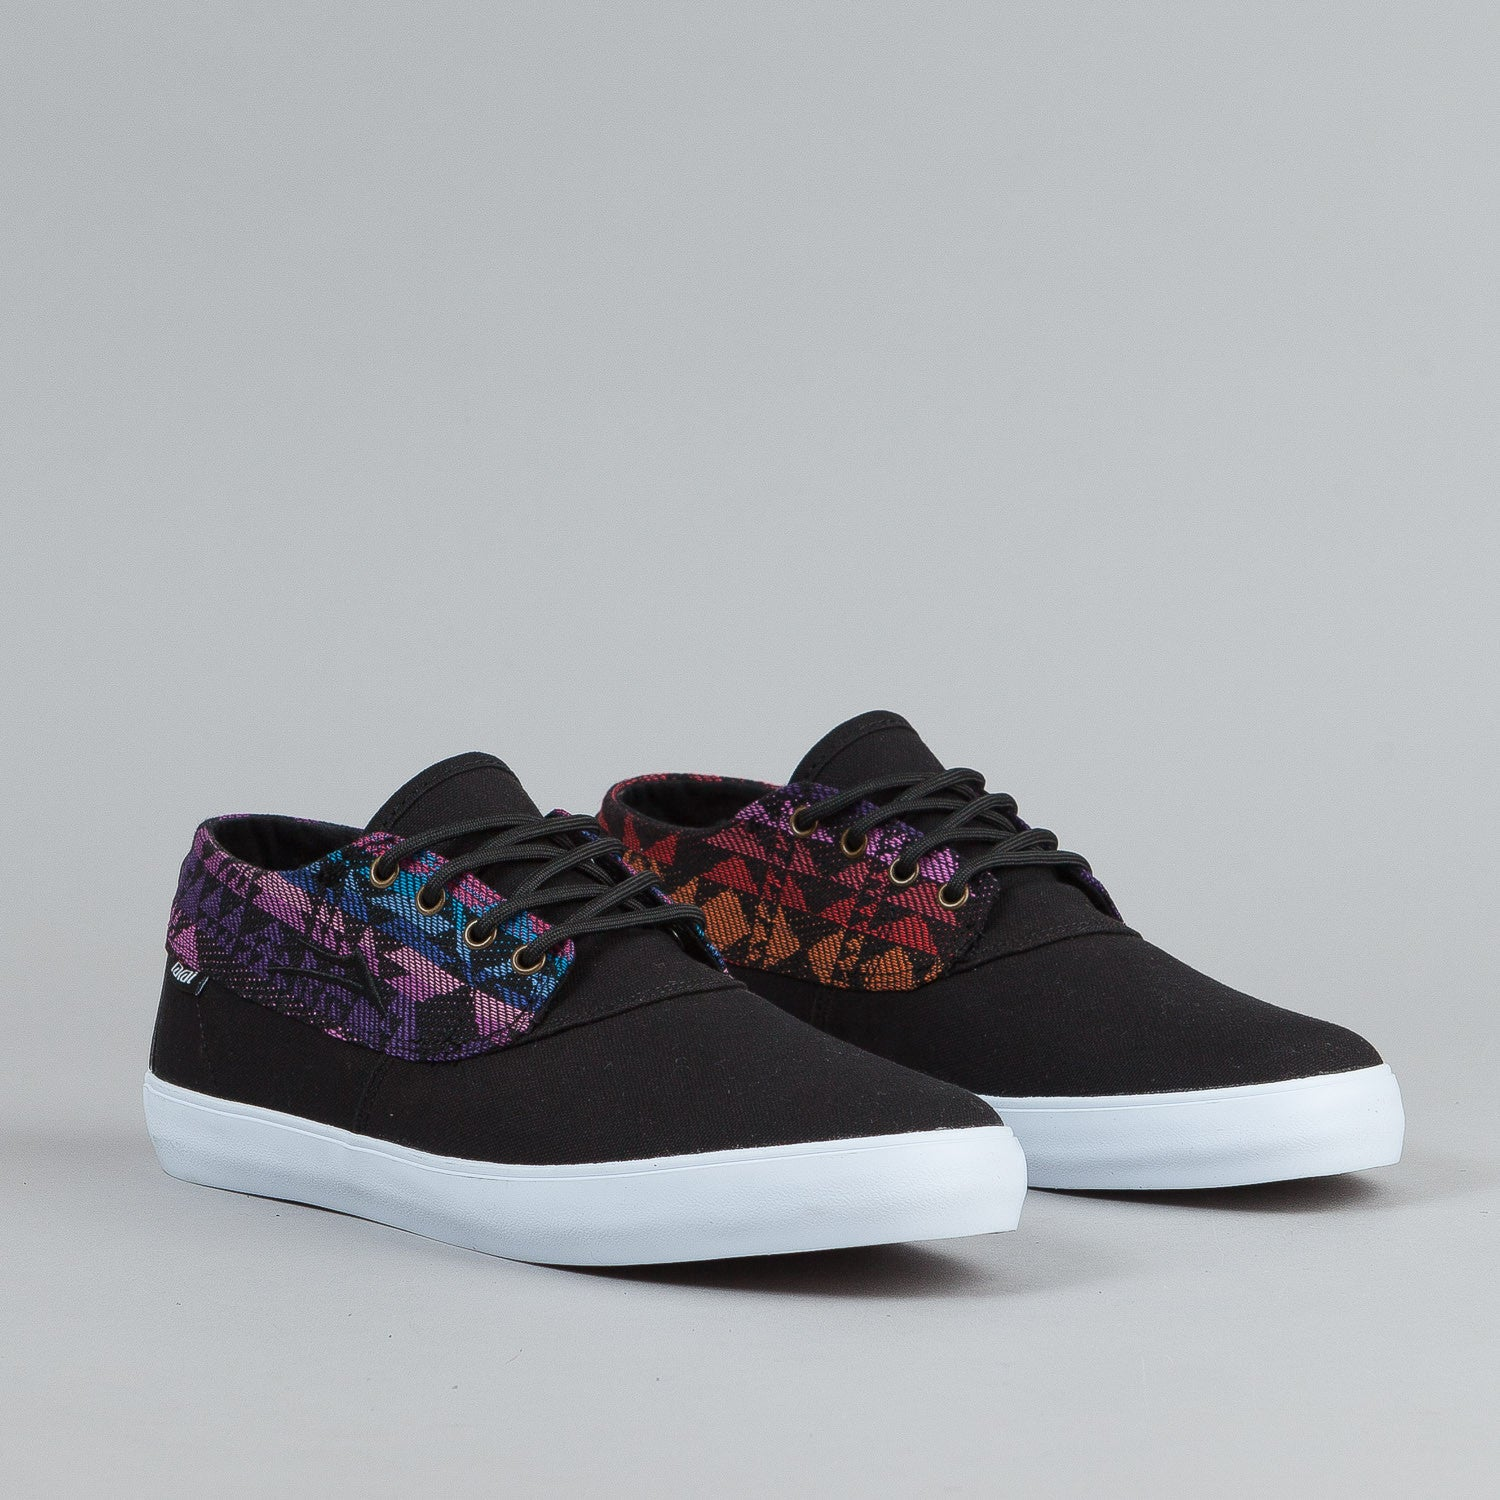 Lakai Camby Mid Shoes - Black / Textile